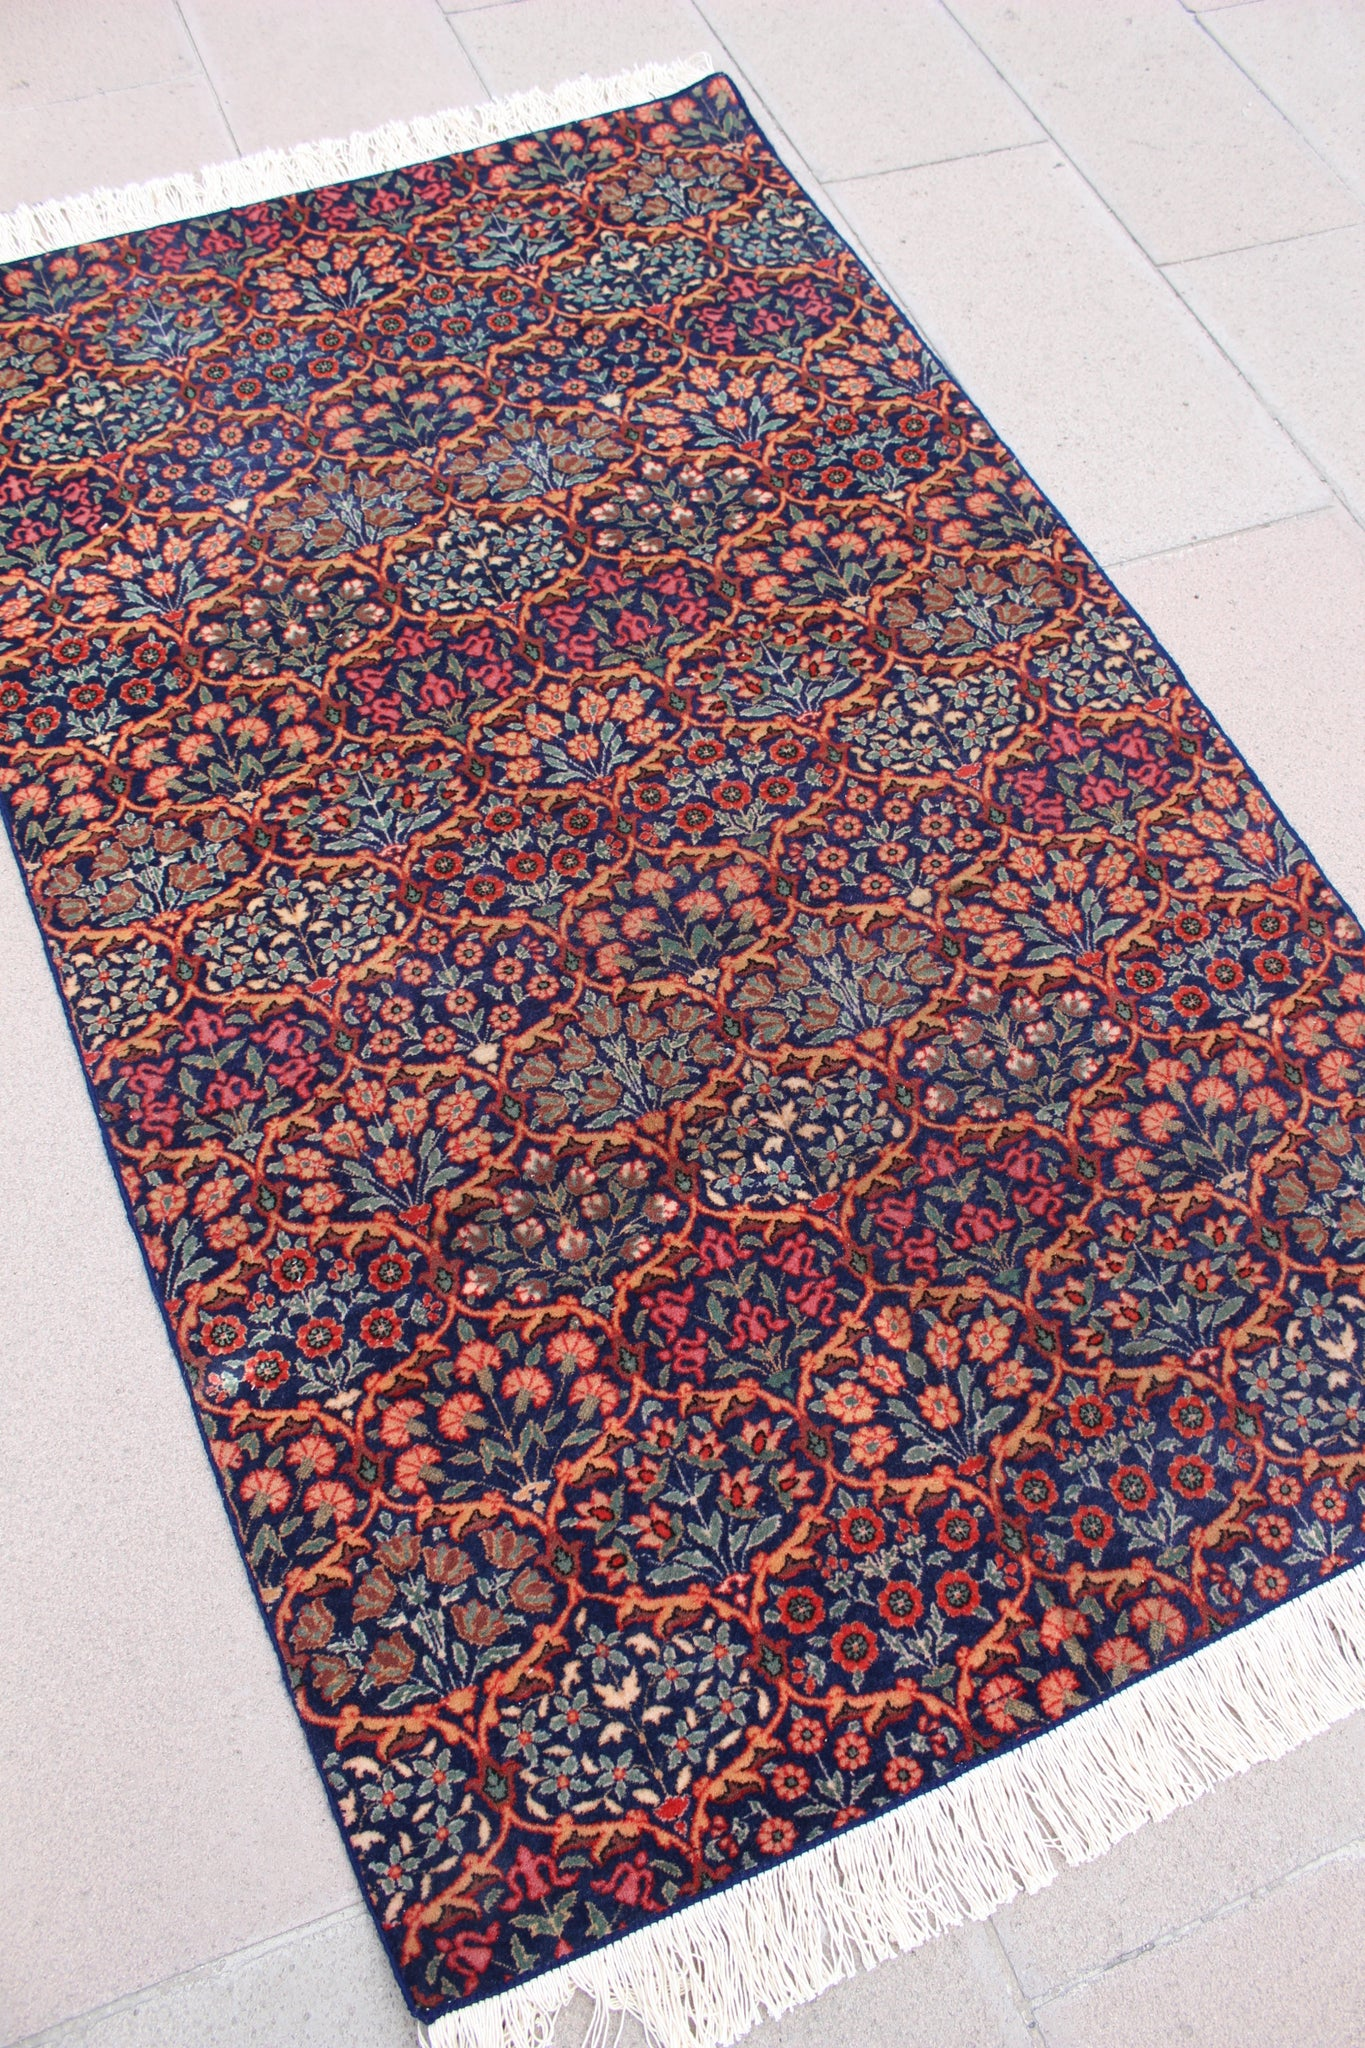 """TIFFANY"" Turkish Vintage Carpet - 172cmX103cm (5'8""X3'5"")."